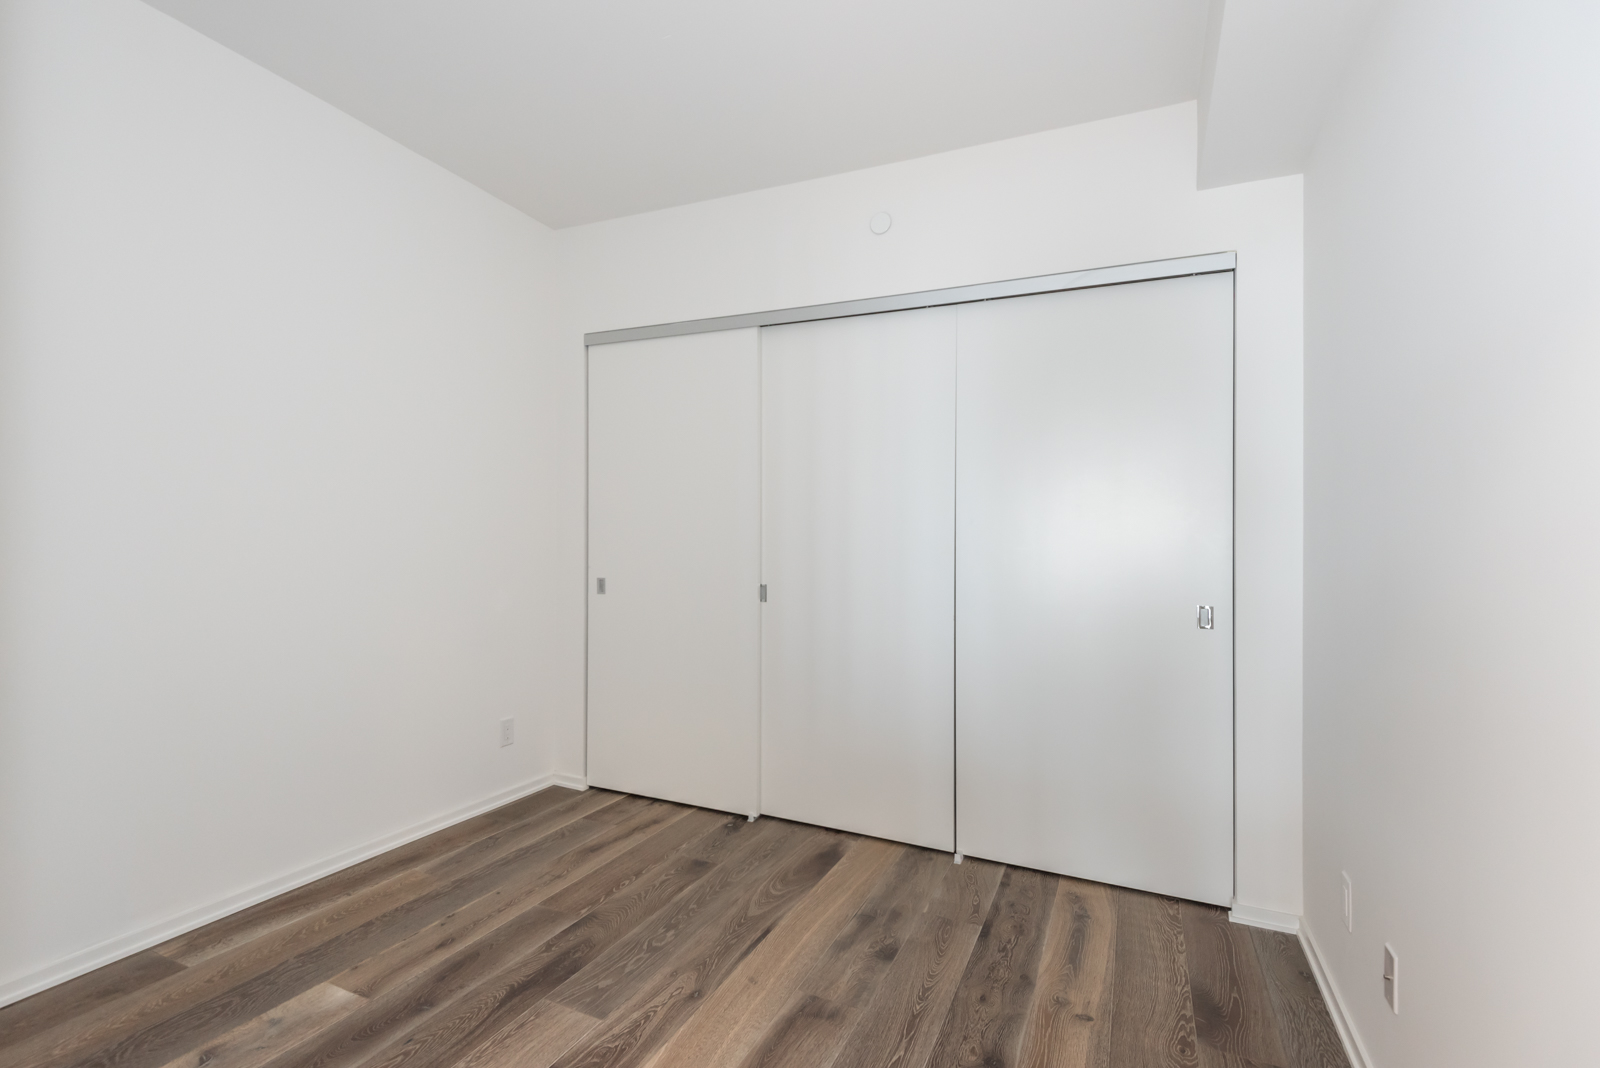 Photo of 2nd bedroom showing large closet doors.